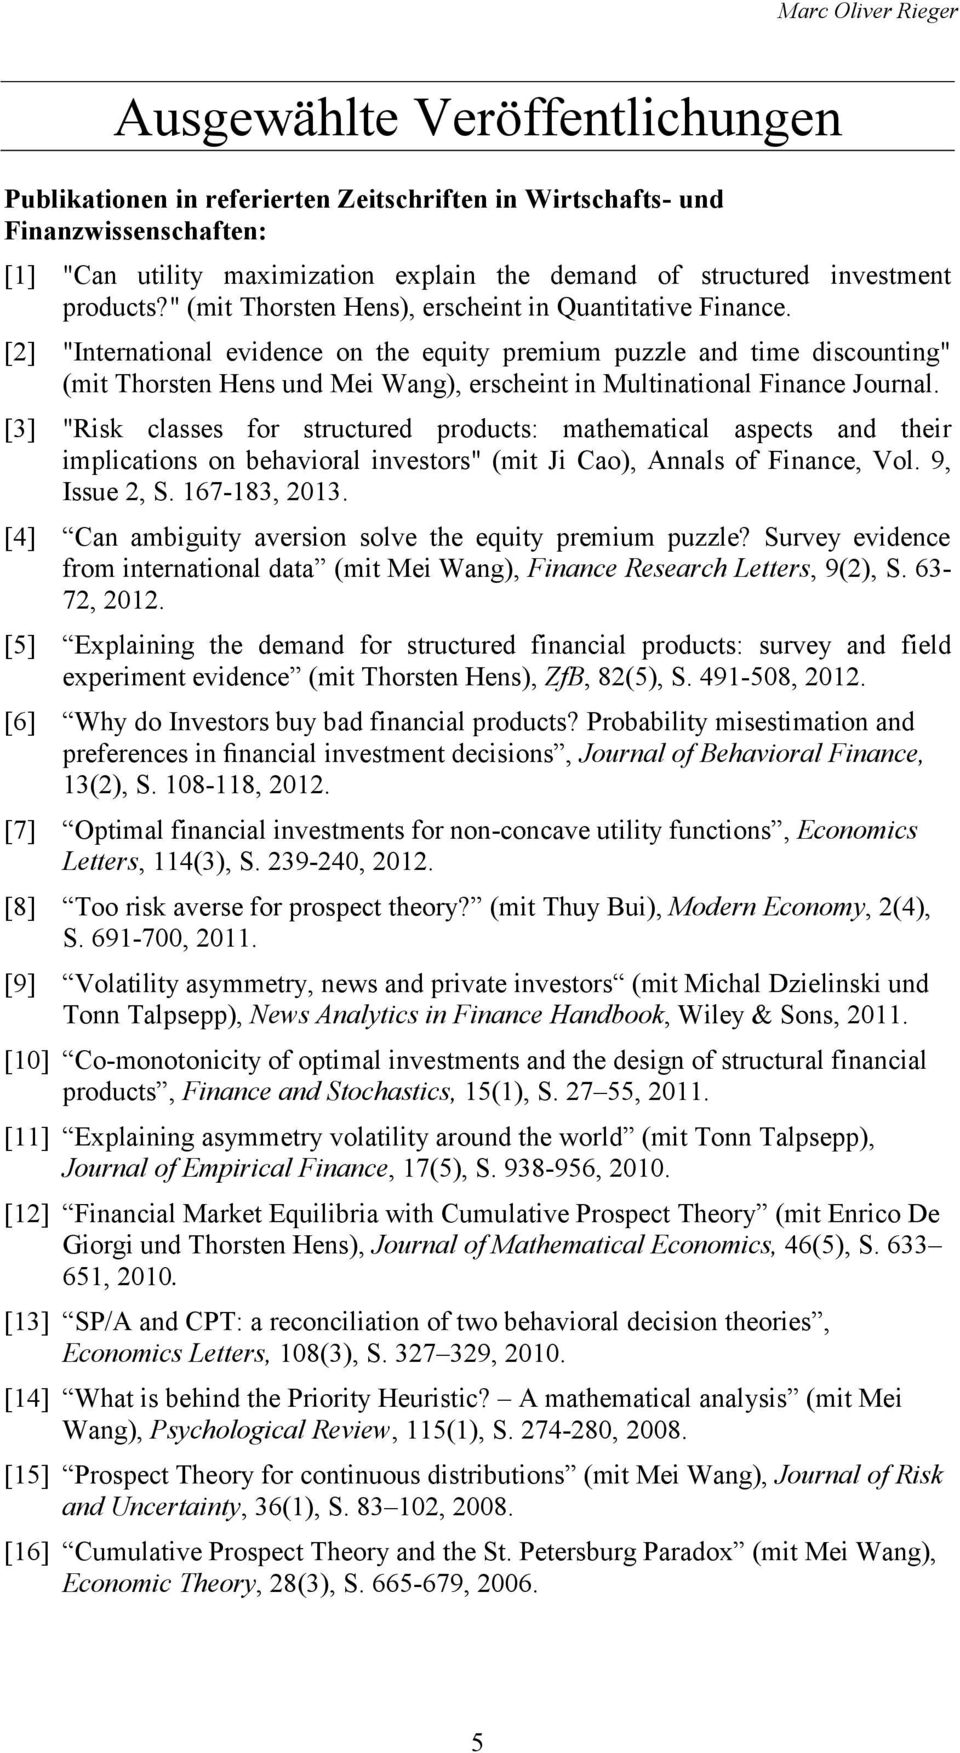 "[2] ""International evidence on the equity premium puzzle and time discounting"" (mit Thorsten Hens und Mei Wang), erscheint in Multinational Finance Journal."